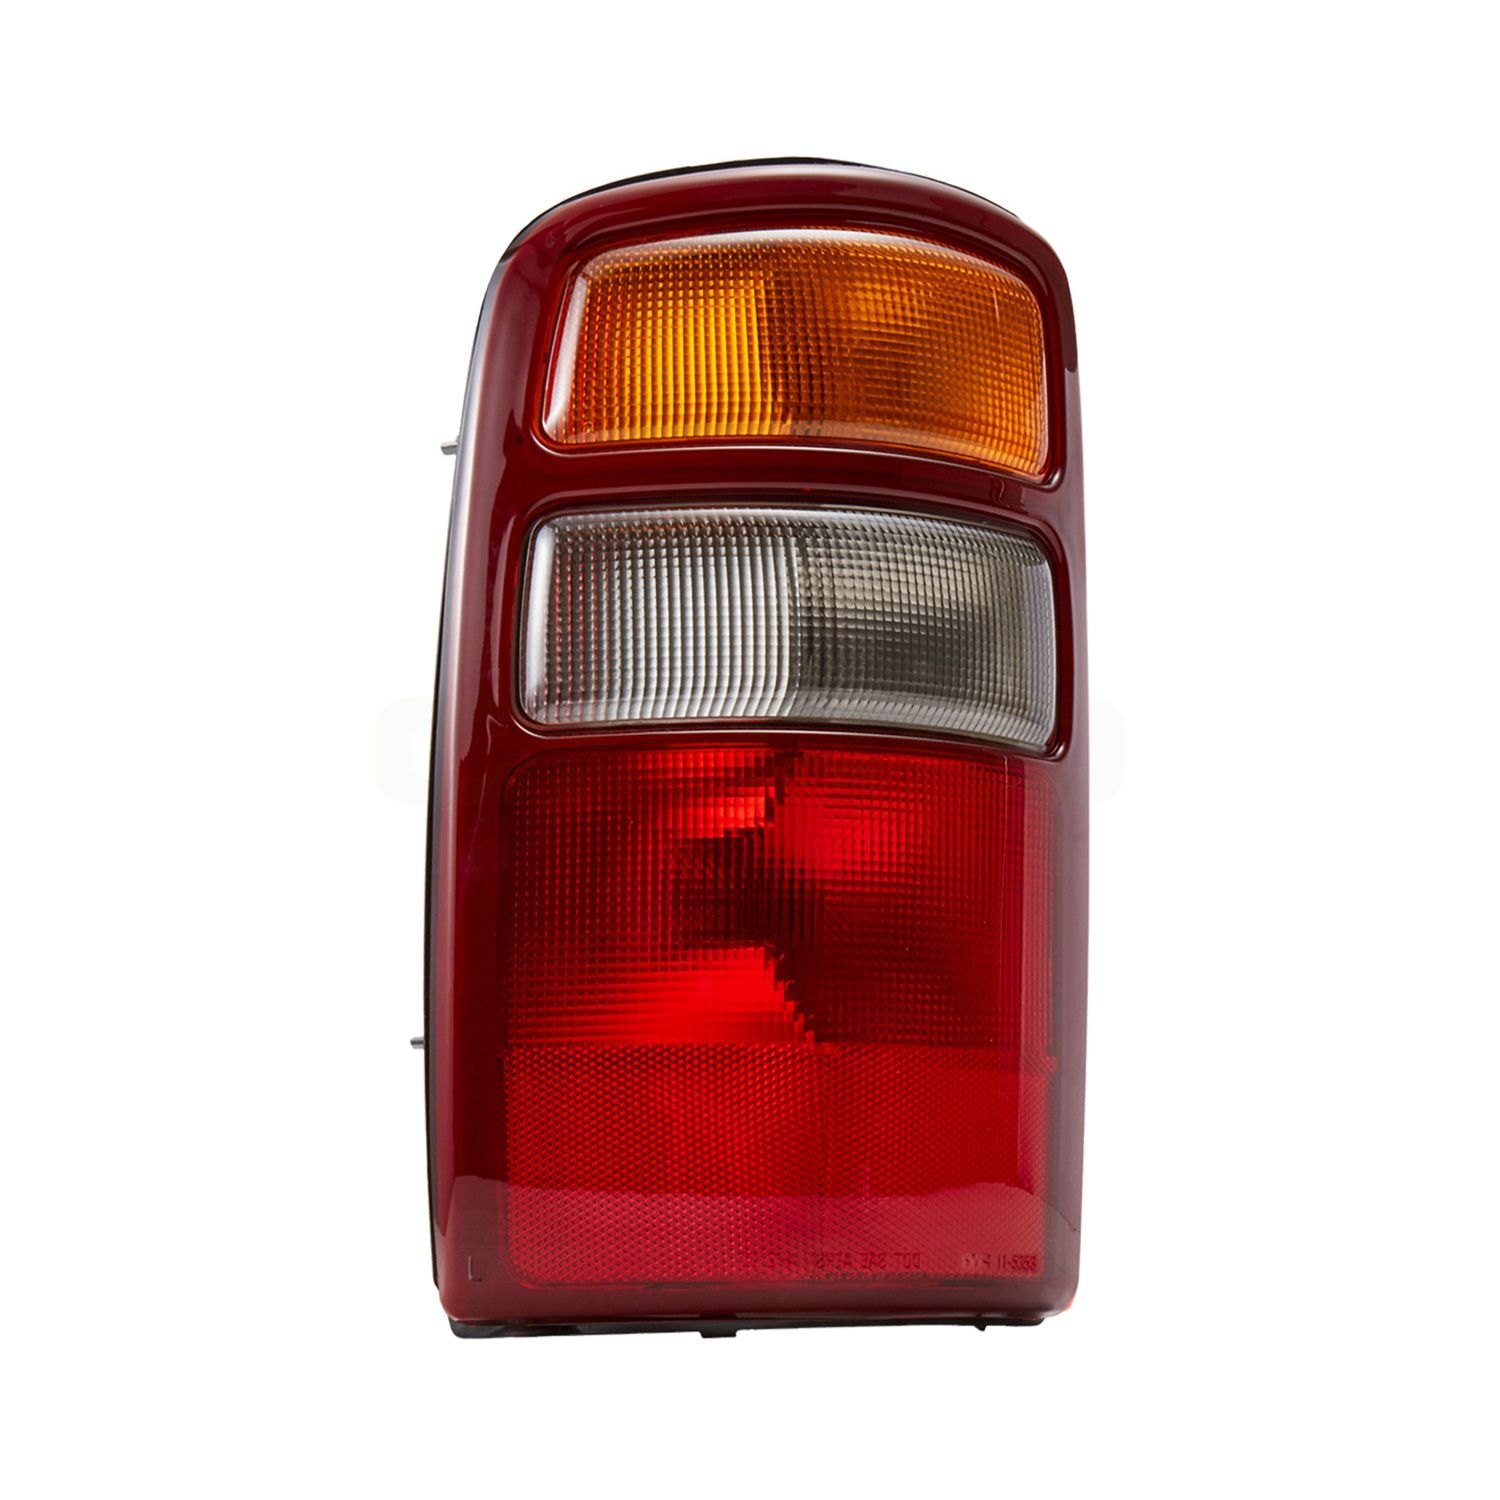 tyc chevy tahoe 2001 2003 replacement tail light. Black Bedroom Furniture Sets. Home Design Ideas